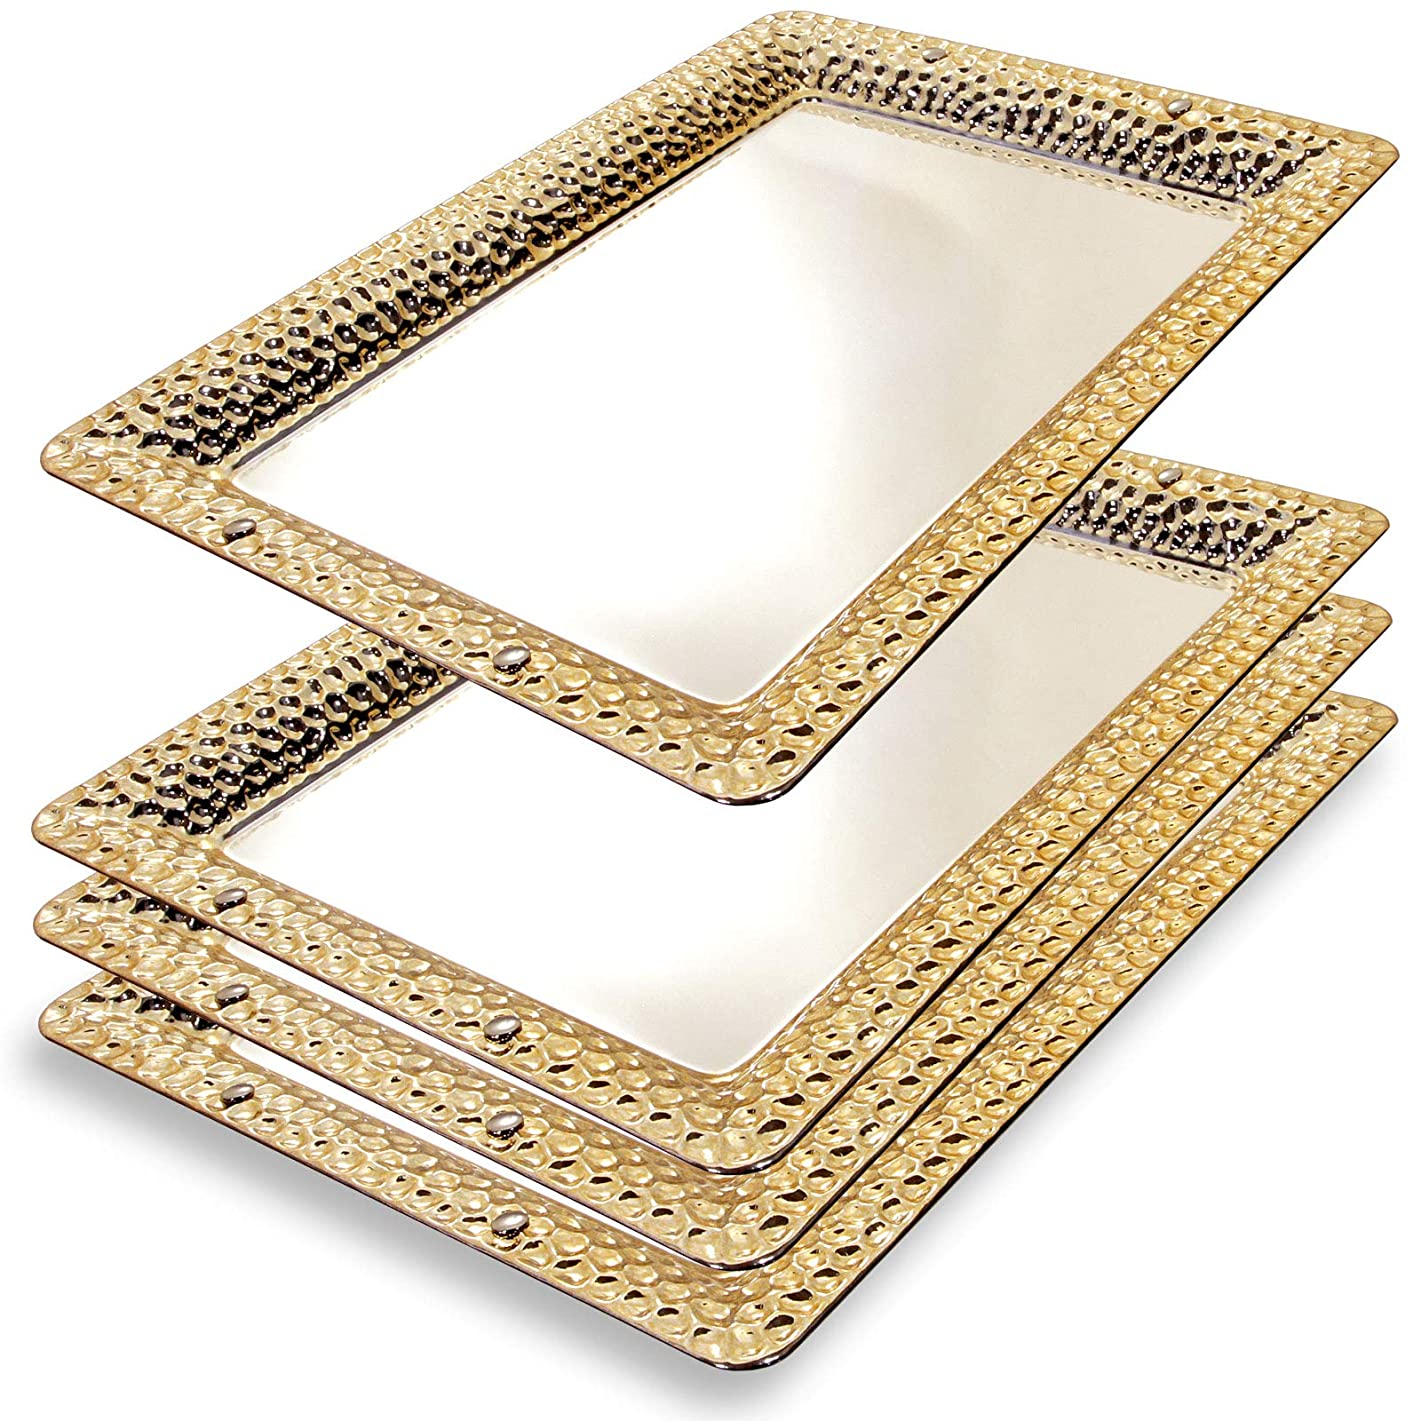 Maro Megastore (Pack of 8) 13.8-Inch x 9.8-Inch Rectangular Chrome Plated Serving Tray Gold Edge Bullet Pattern Engraved Decorative Wedding Birthday Buffet Party Dessert Food Snack Wine 280 M Ts-176